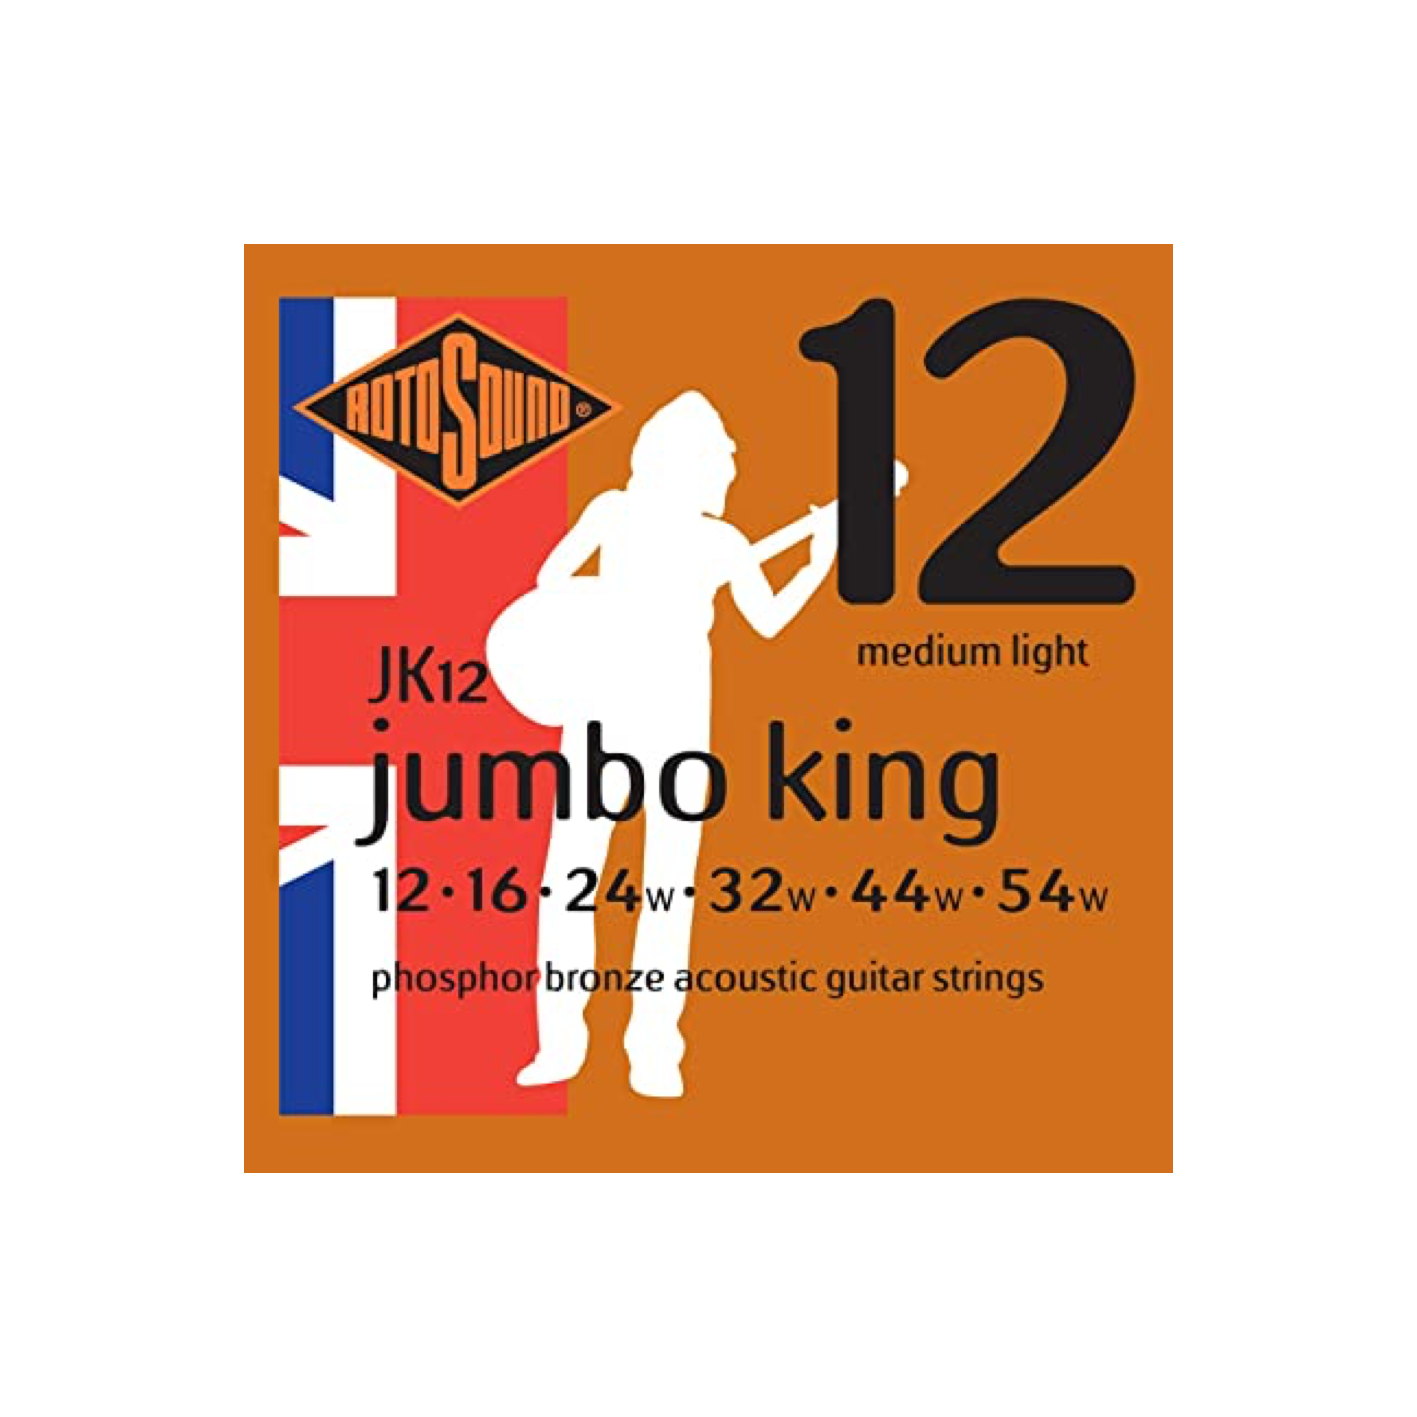 Rotosound Jumbo King Phosphor Bronze Acoustic Strings